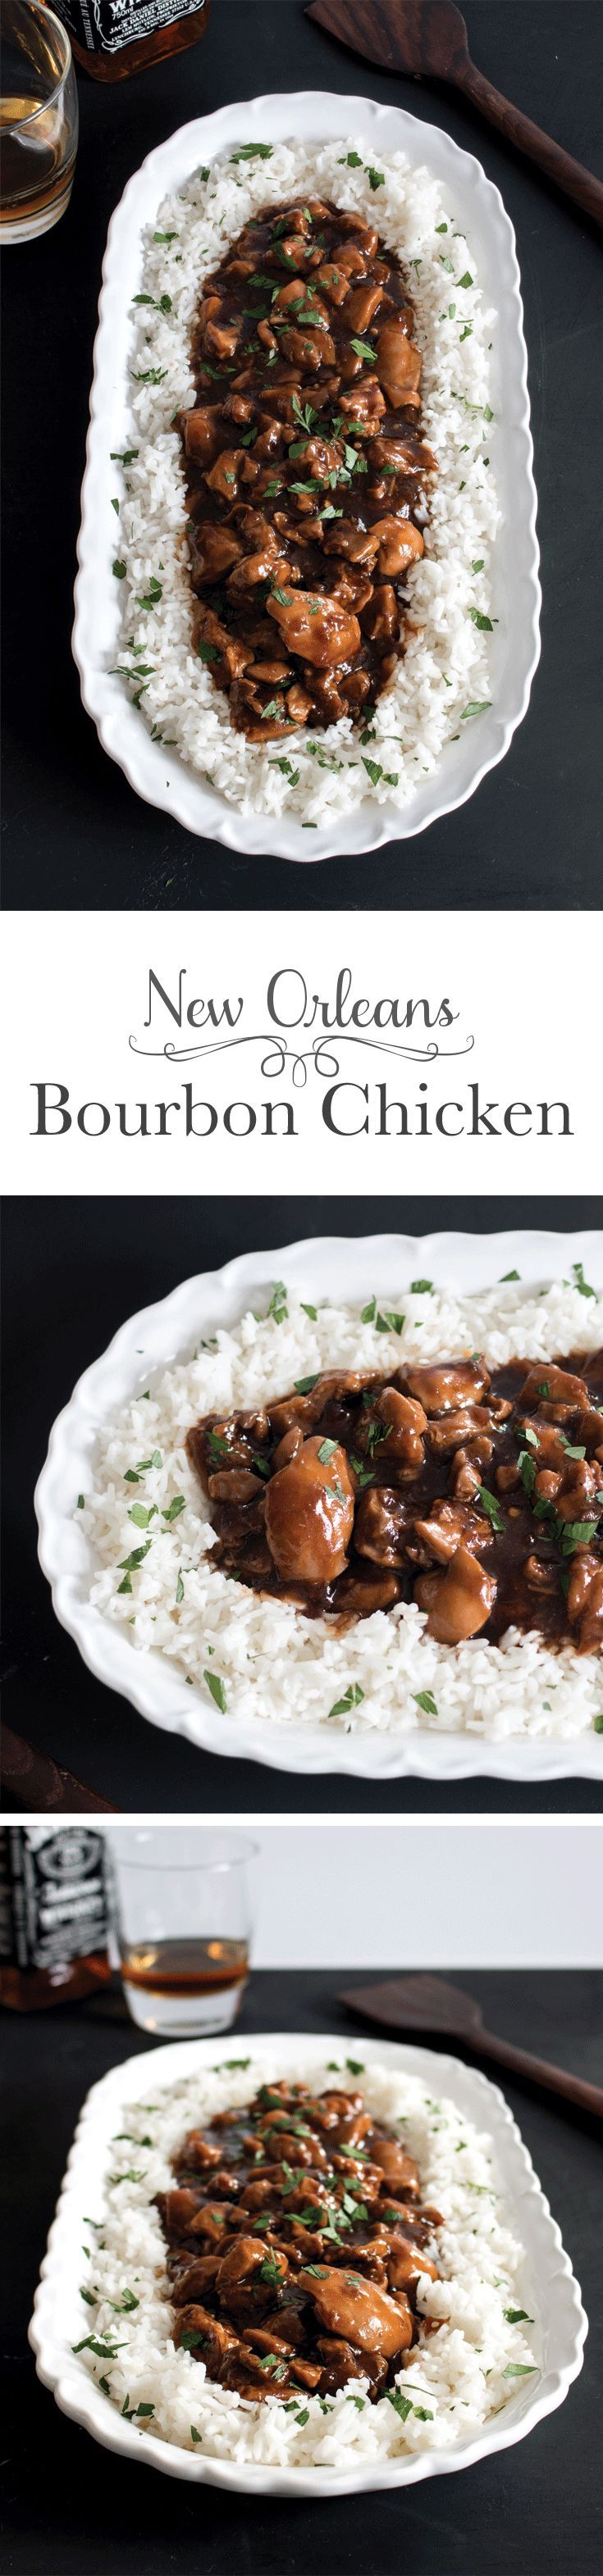 Straight off of Bourbon Street in New Orleans, this tender bourbon chicken is covered in a slightly sweet sauce with a little kick. It's a true taste of the South you won't be able to resist. There's even instructions for making it in the slow cooker! Yo